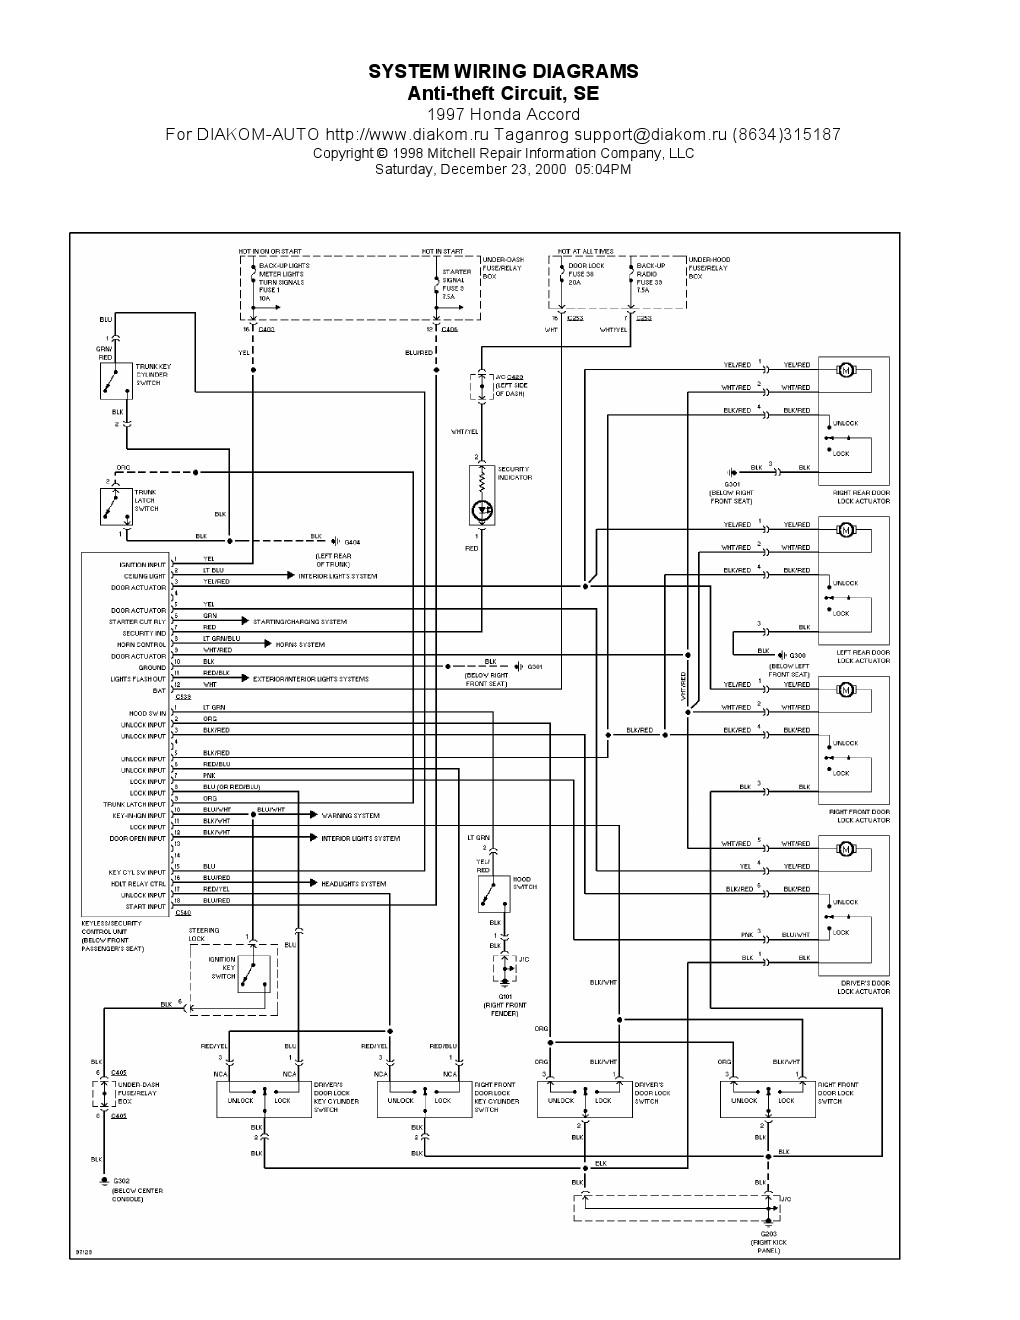 97 Ford Aerostar Wiring Diagram Library 1997 Taurus Saturn Sc1 Parts